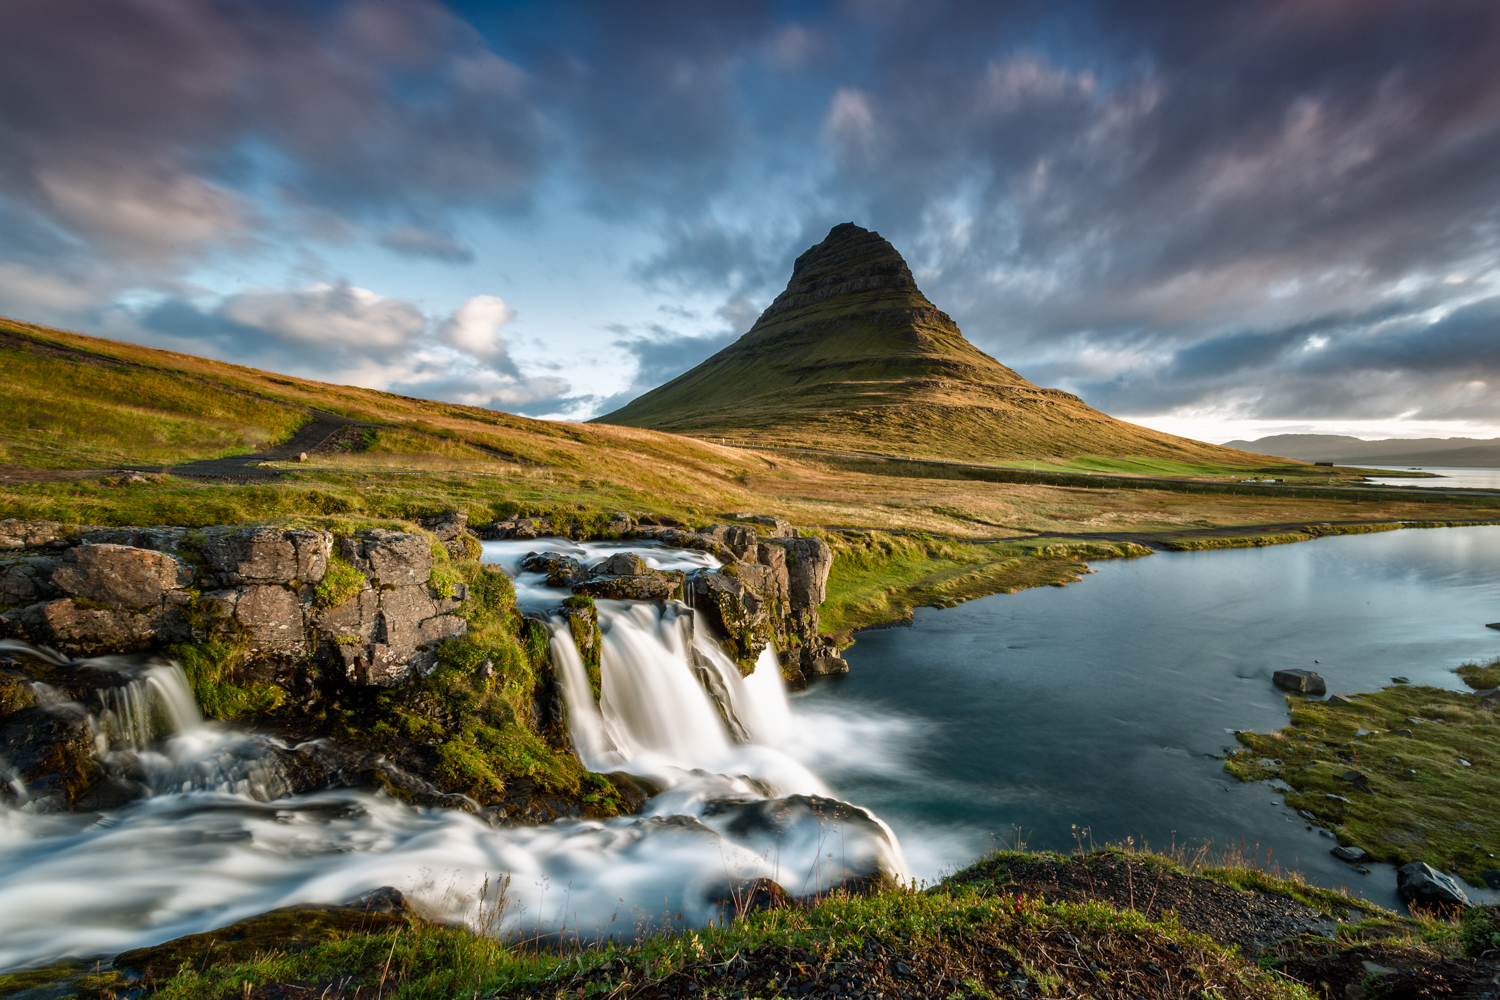 Kirkjufell www.ishoottravels.com your ticket to travel photography. Blog di fotografia di viaggi. © Galli / Trevisan